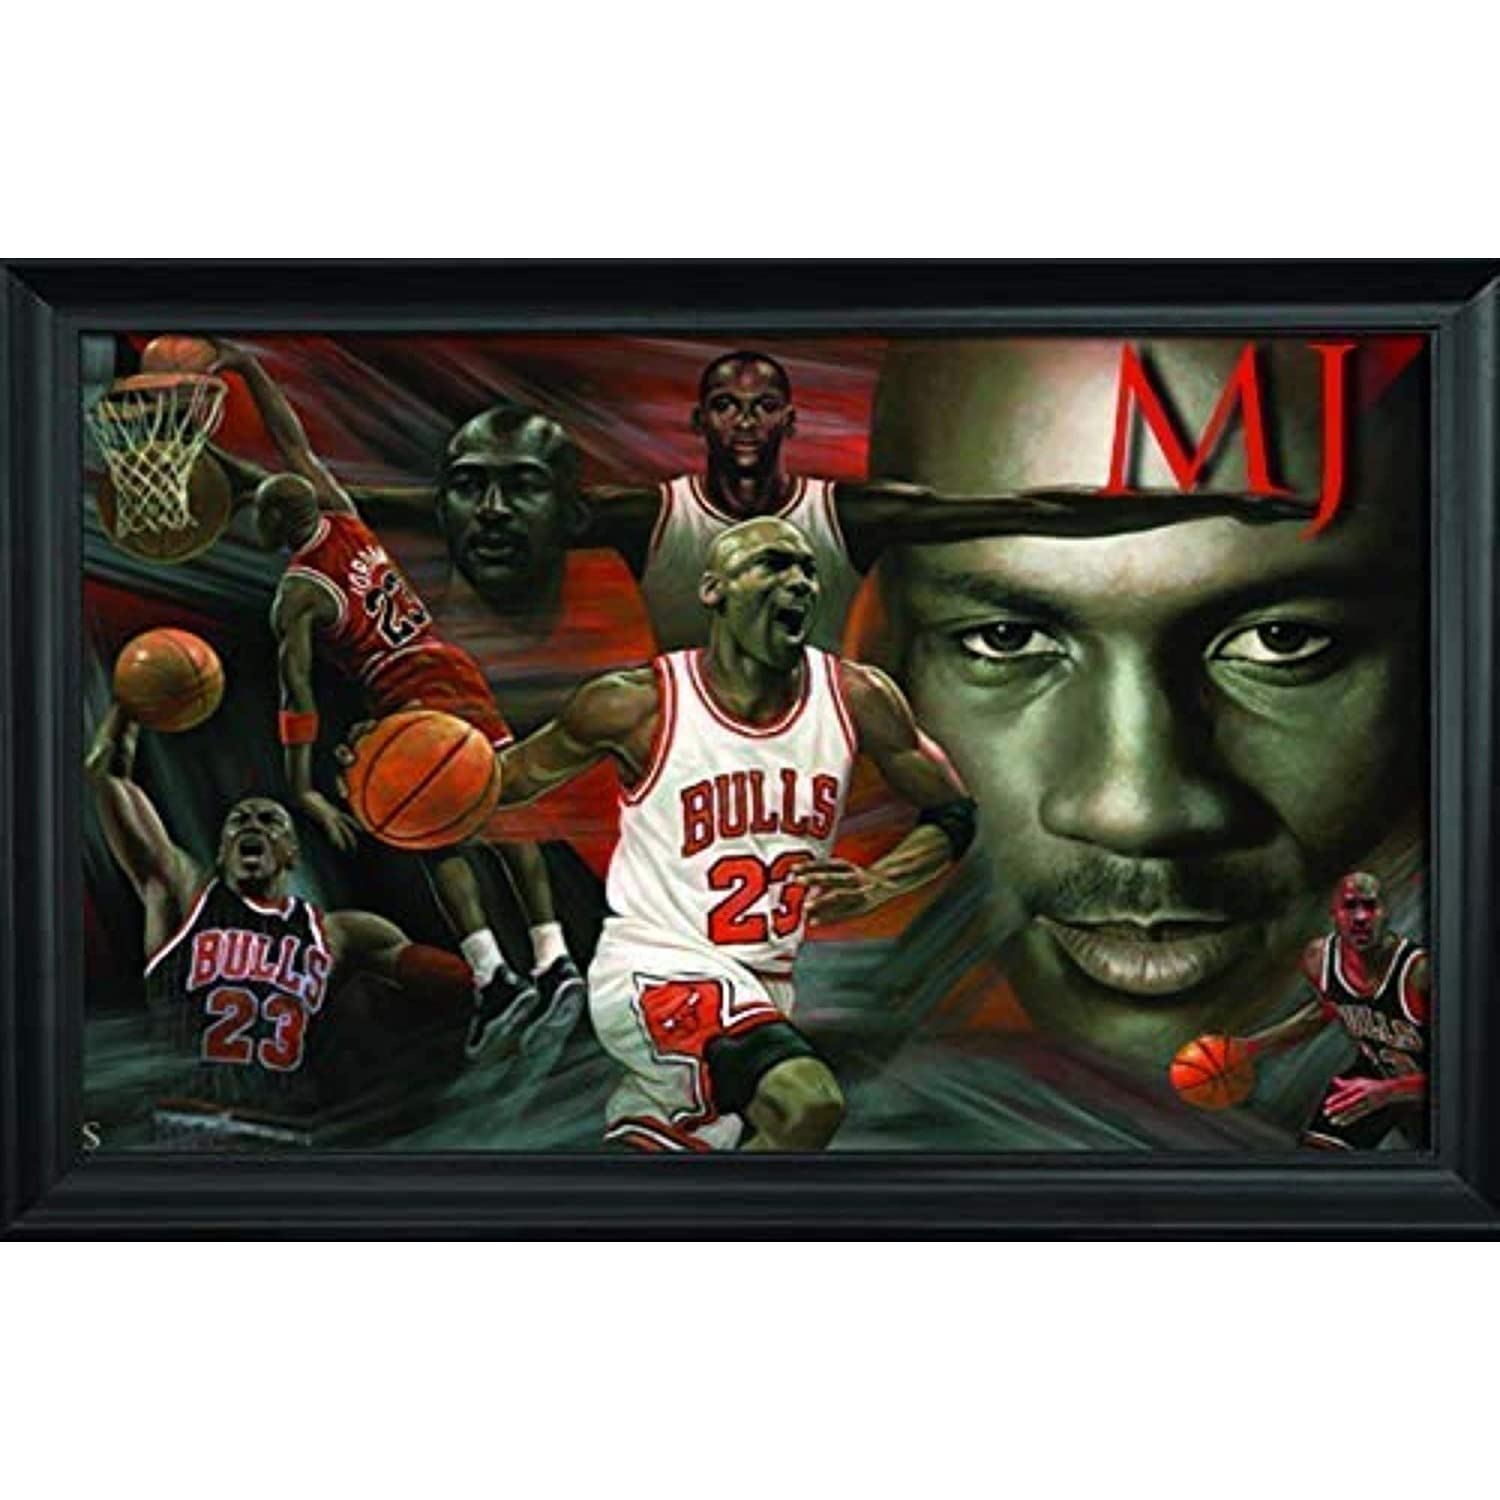 def165aa94b28 Michael Jordan Wall Art Decor Framed Print | 36x24 Premium (Canvas/Painting  Like) Textured Poster | NBA Basketball Ultimate Greatest of All Time ...